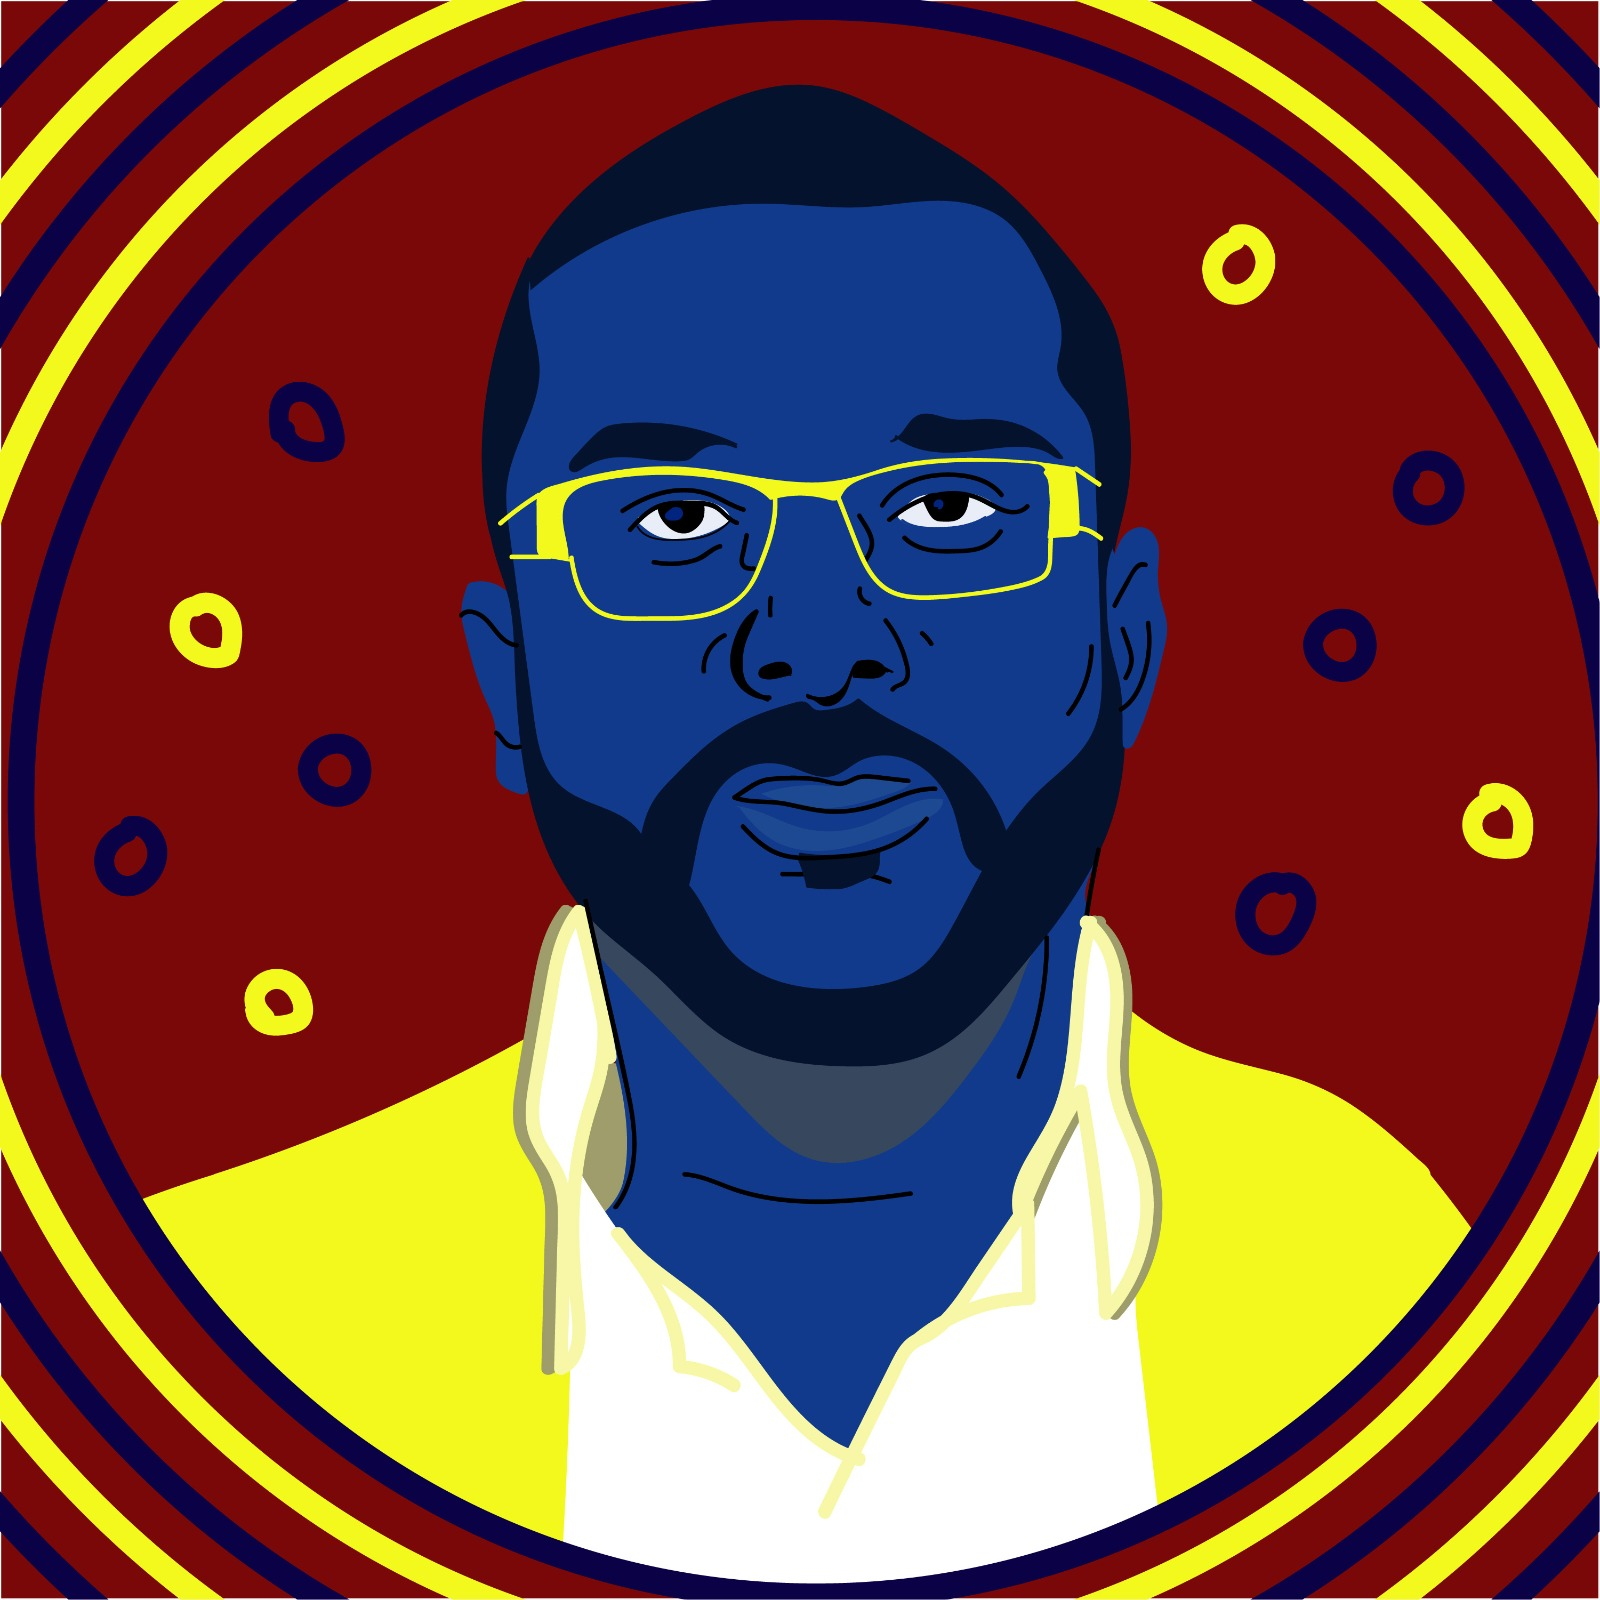 Tyler Perry illustrated for 360 magazine by Rita Azar